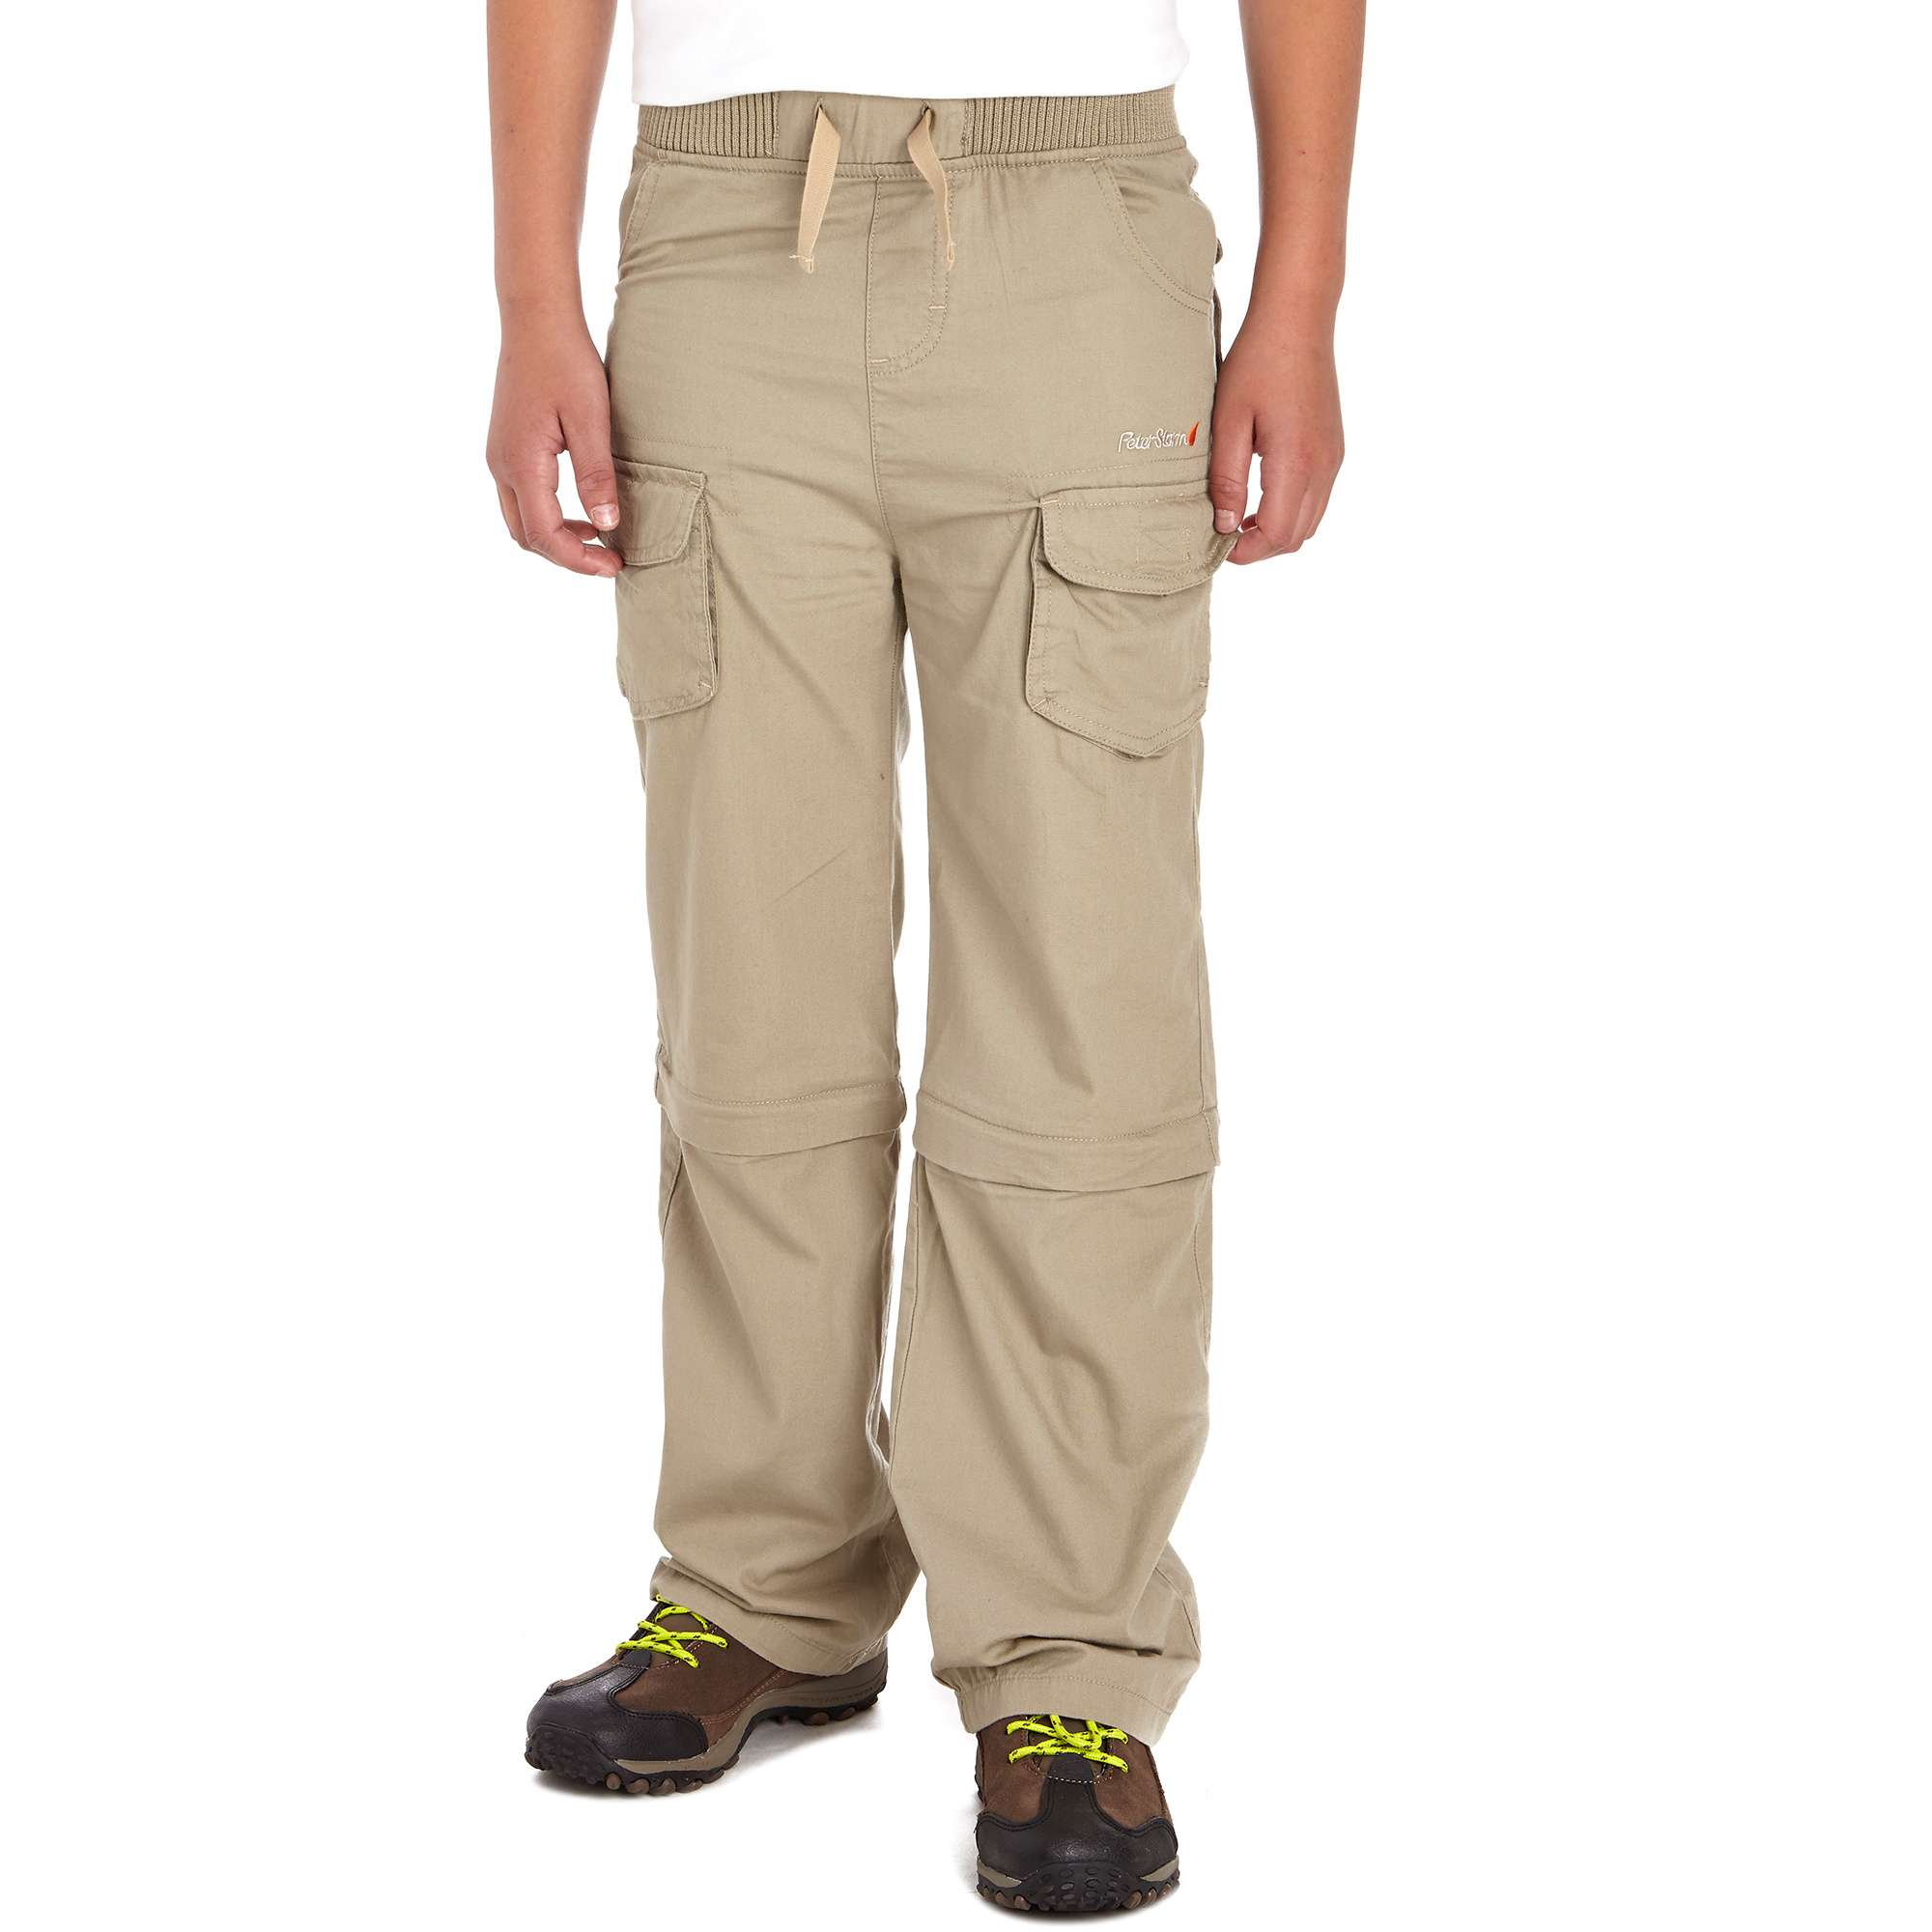 PETER STORM Boys' Zip Off Trousers